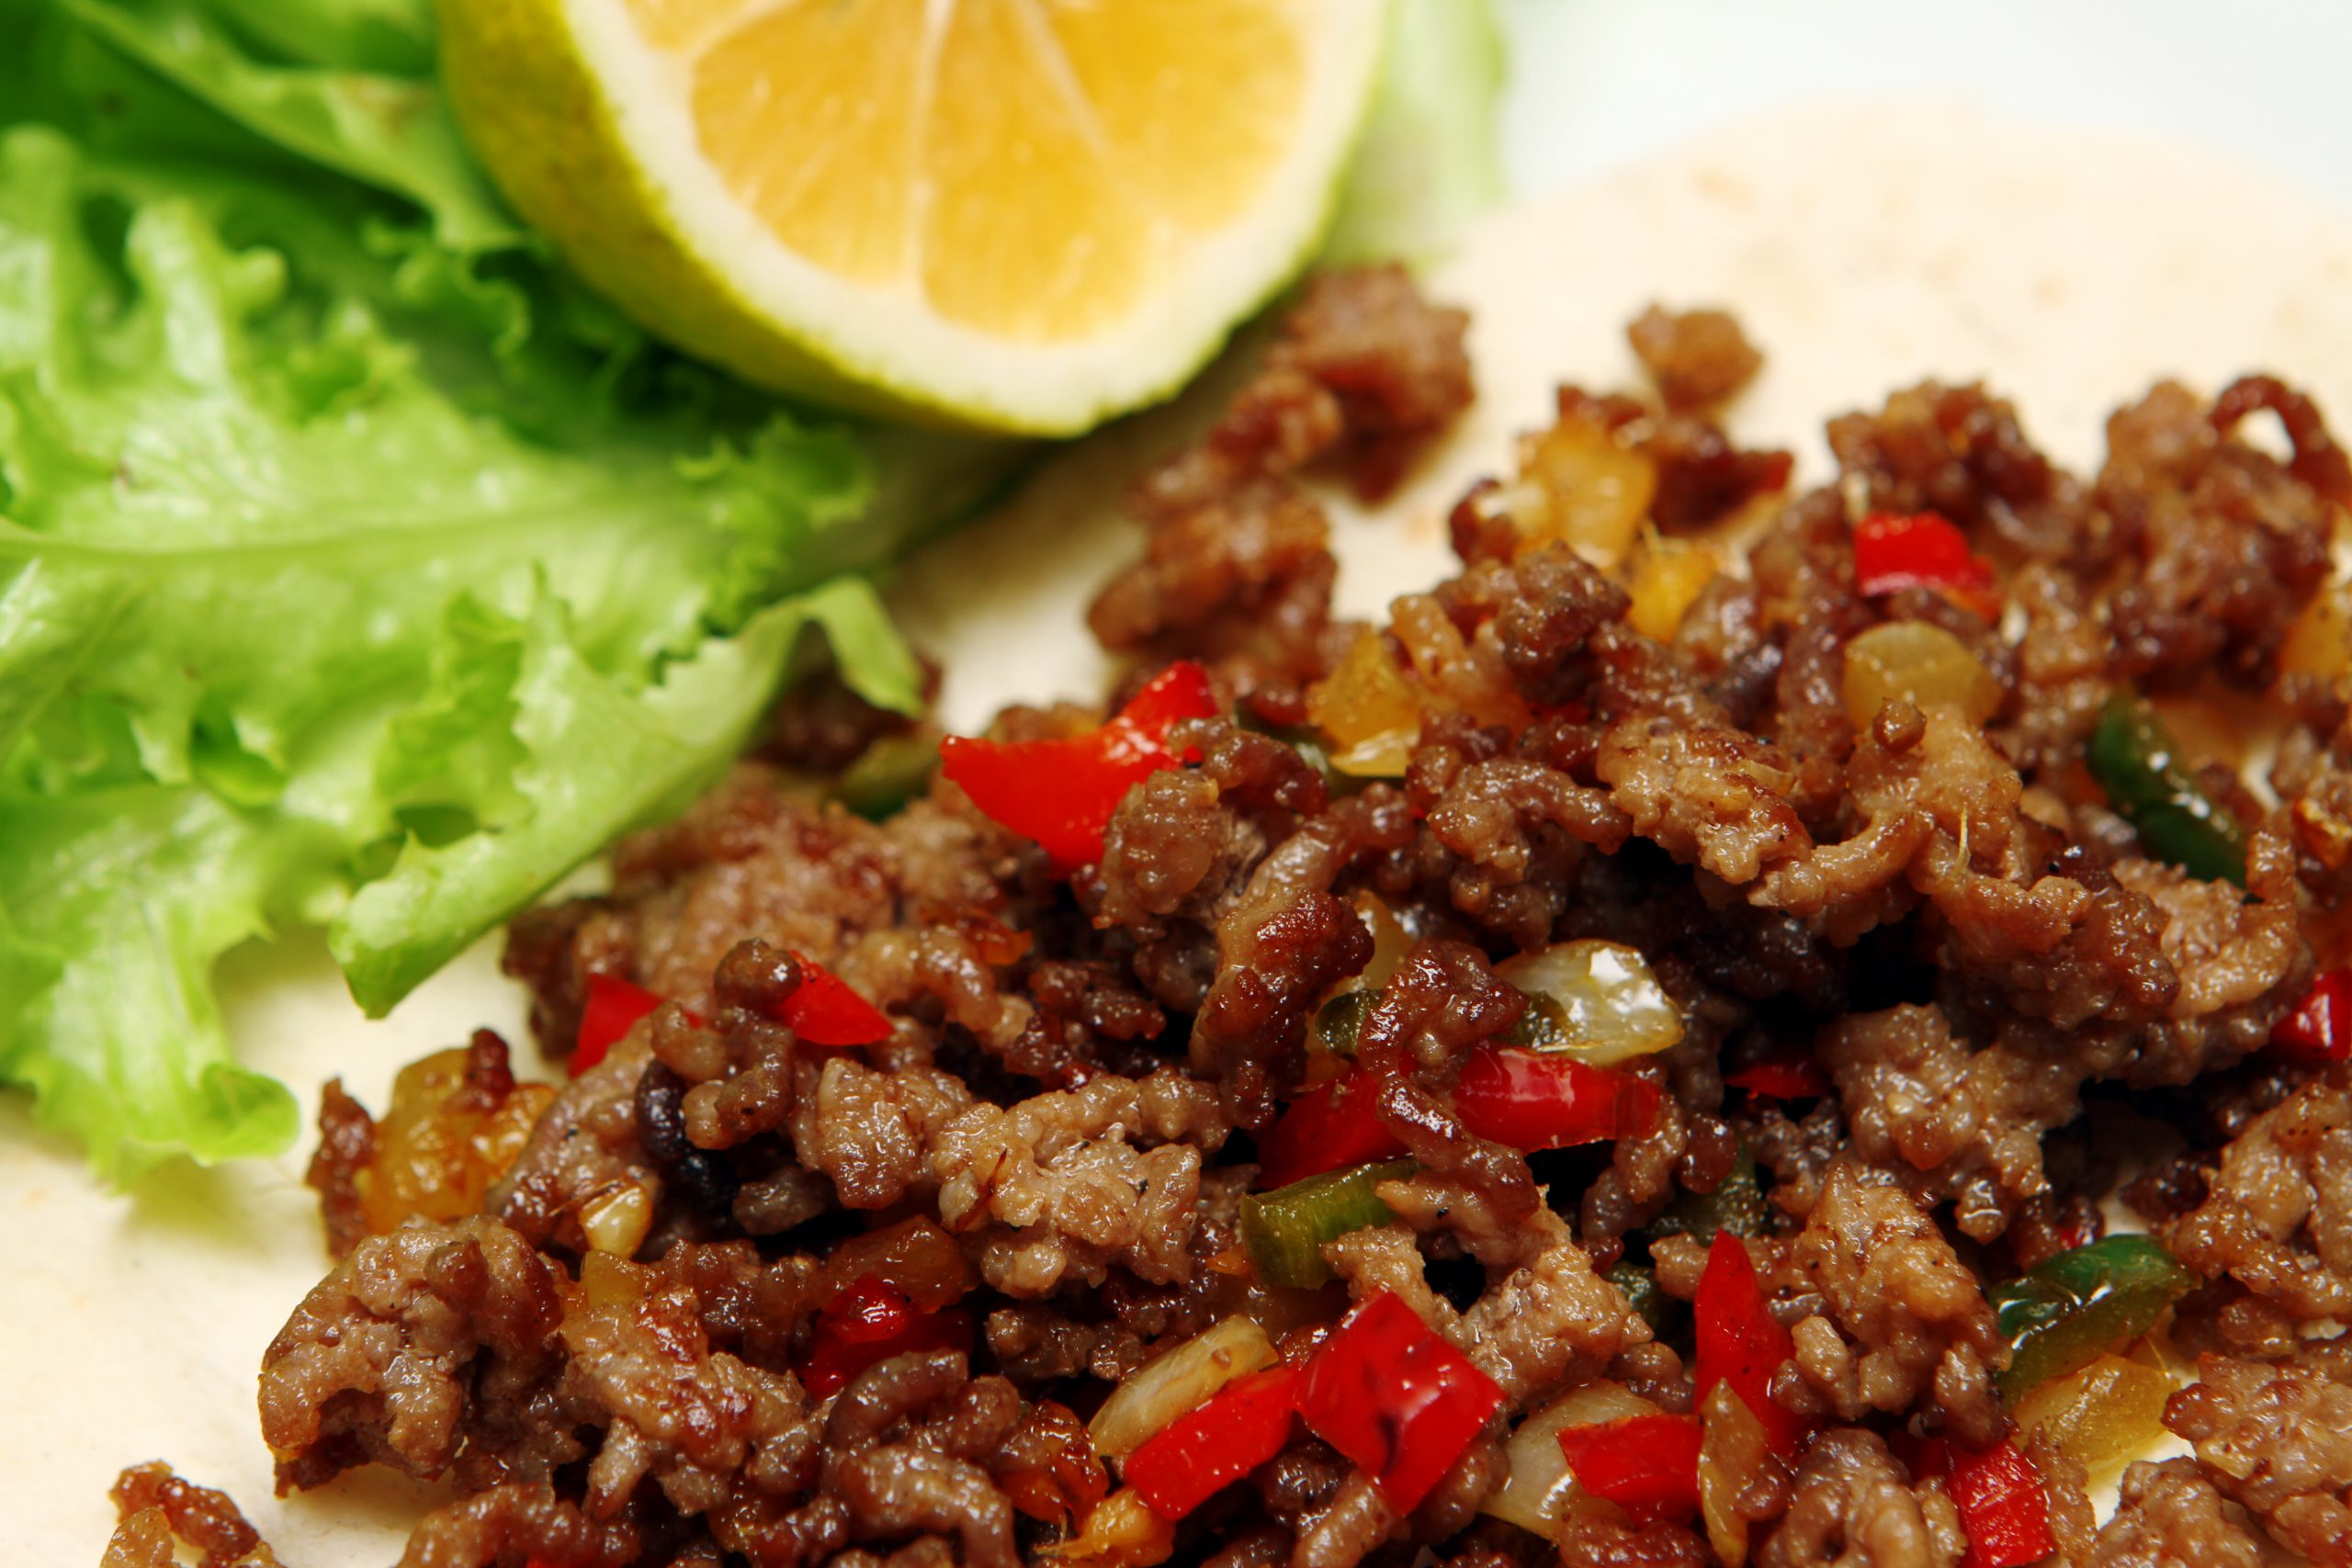 SPICY GROUND BEEF LETTUCE WRAPS